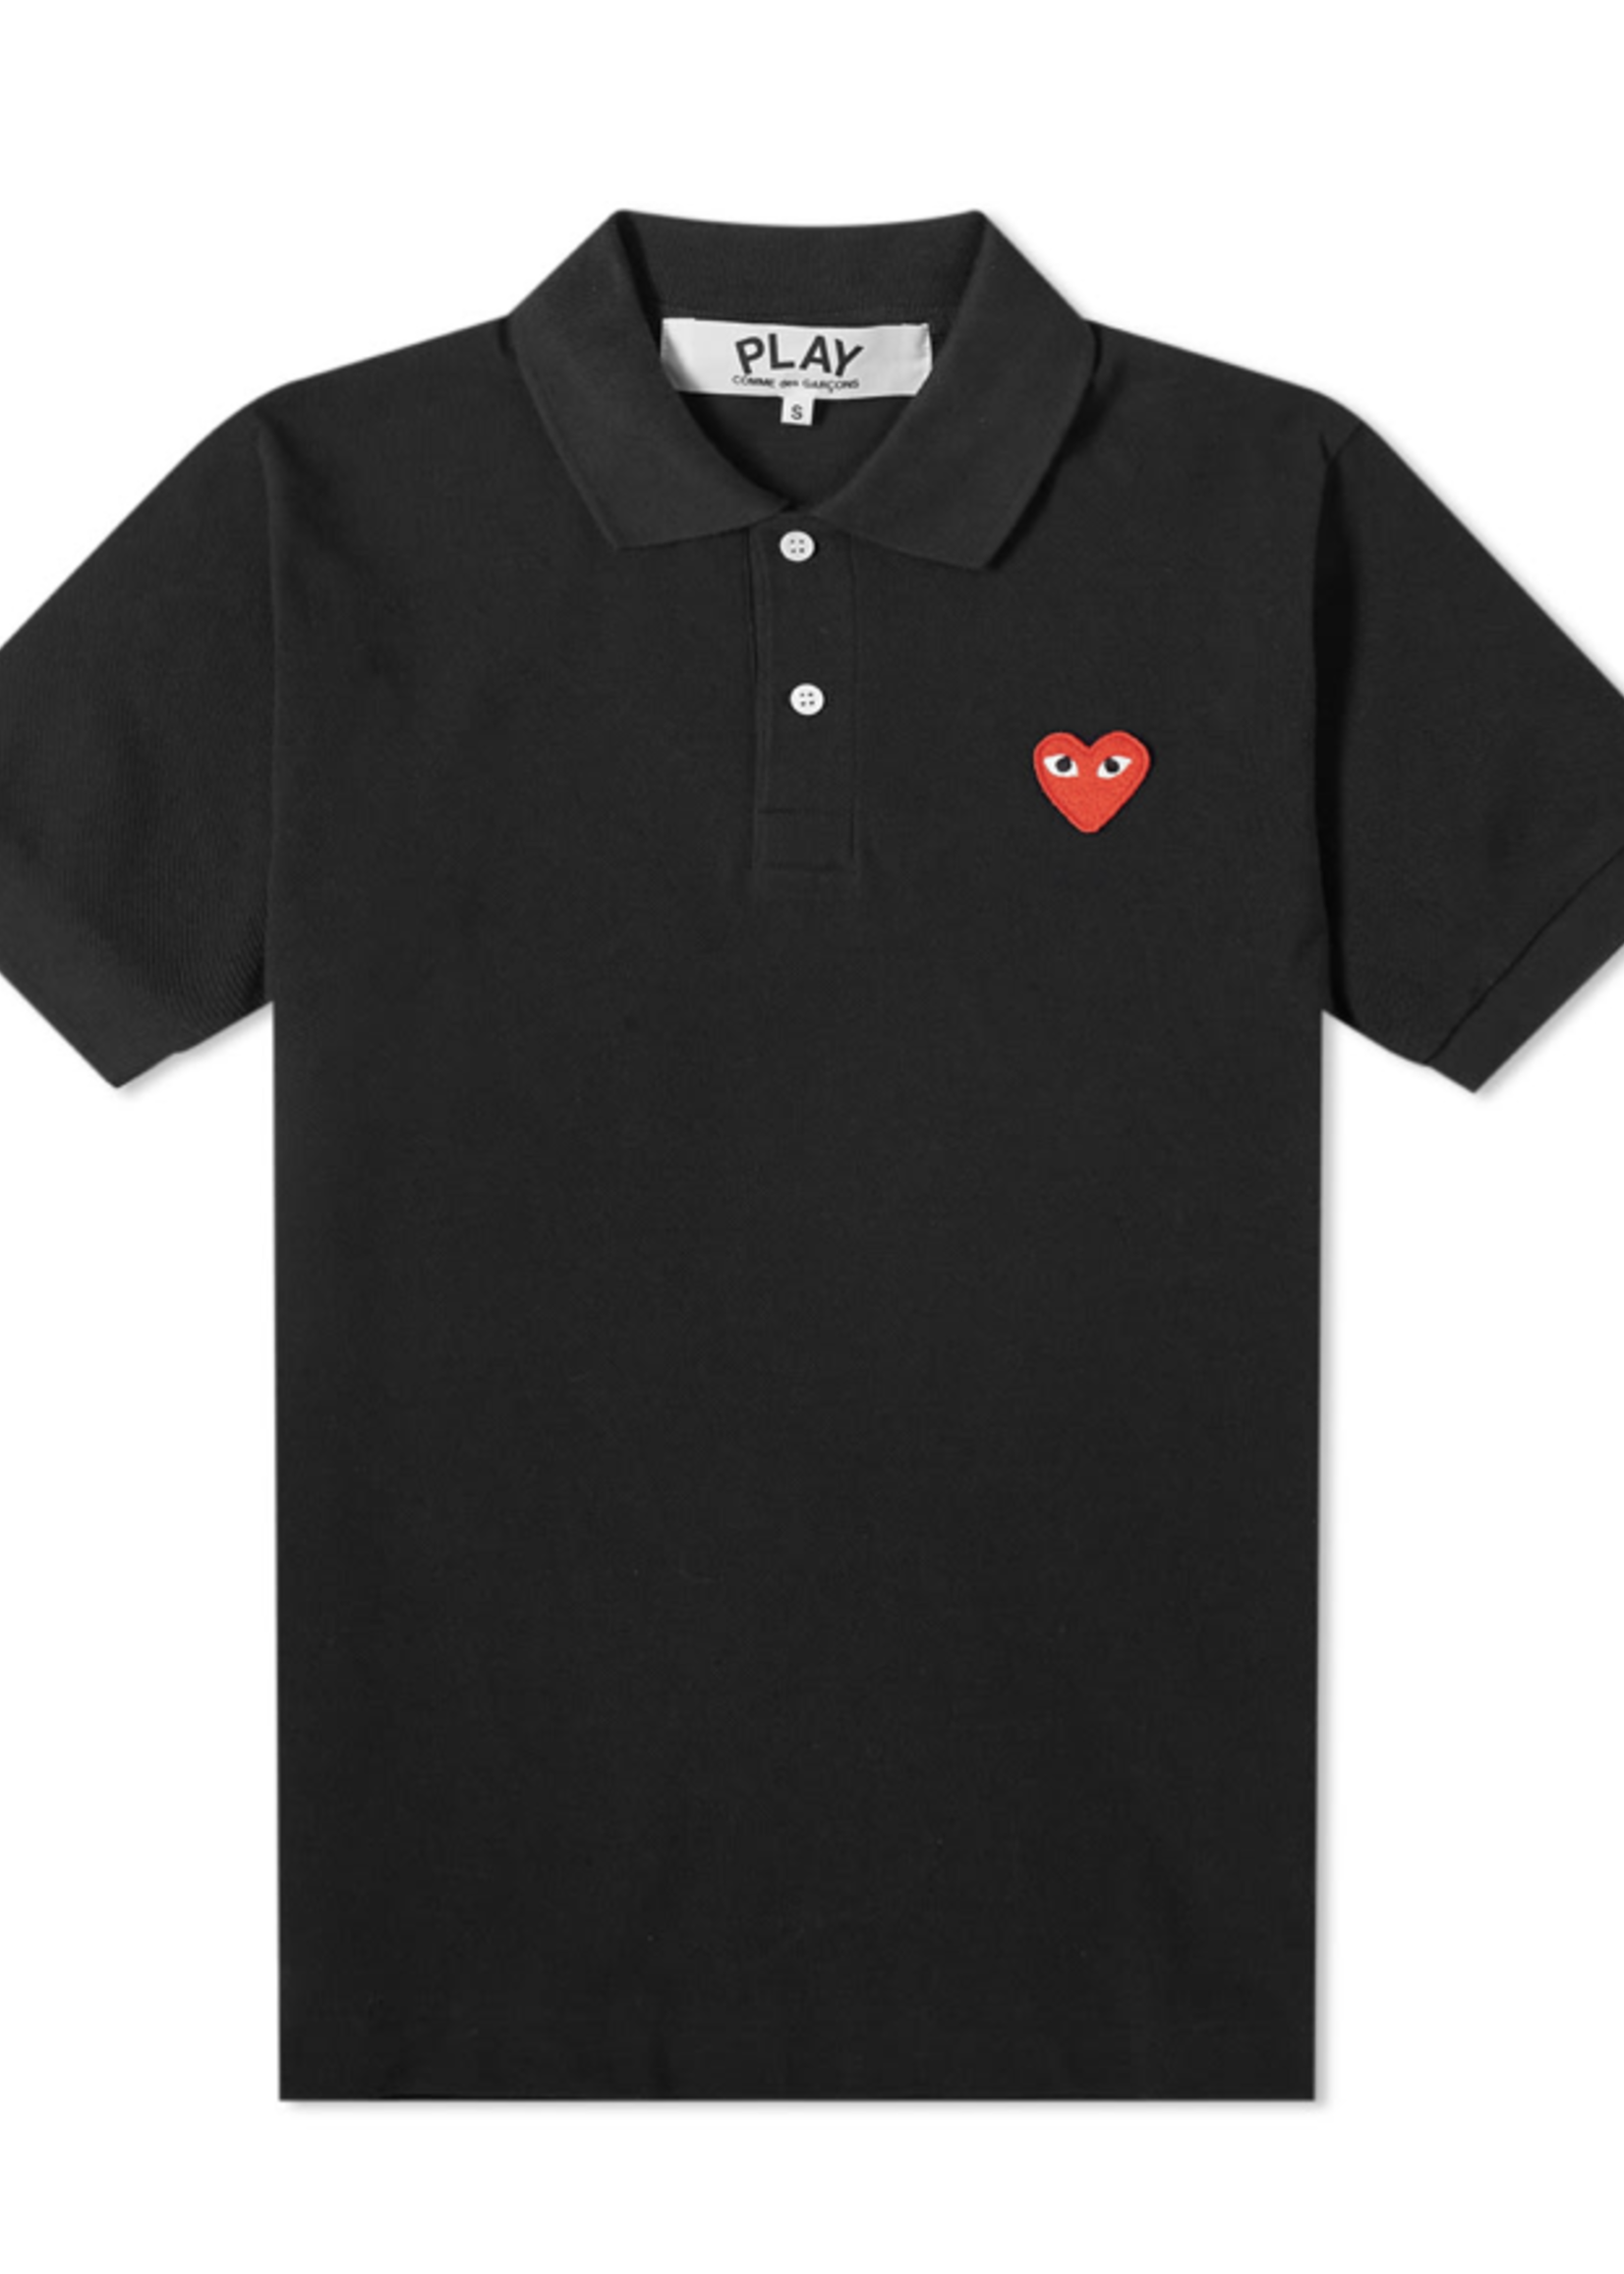 COMME des GARÇONS PLAY Black Polo with Red Heart